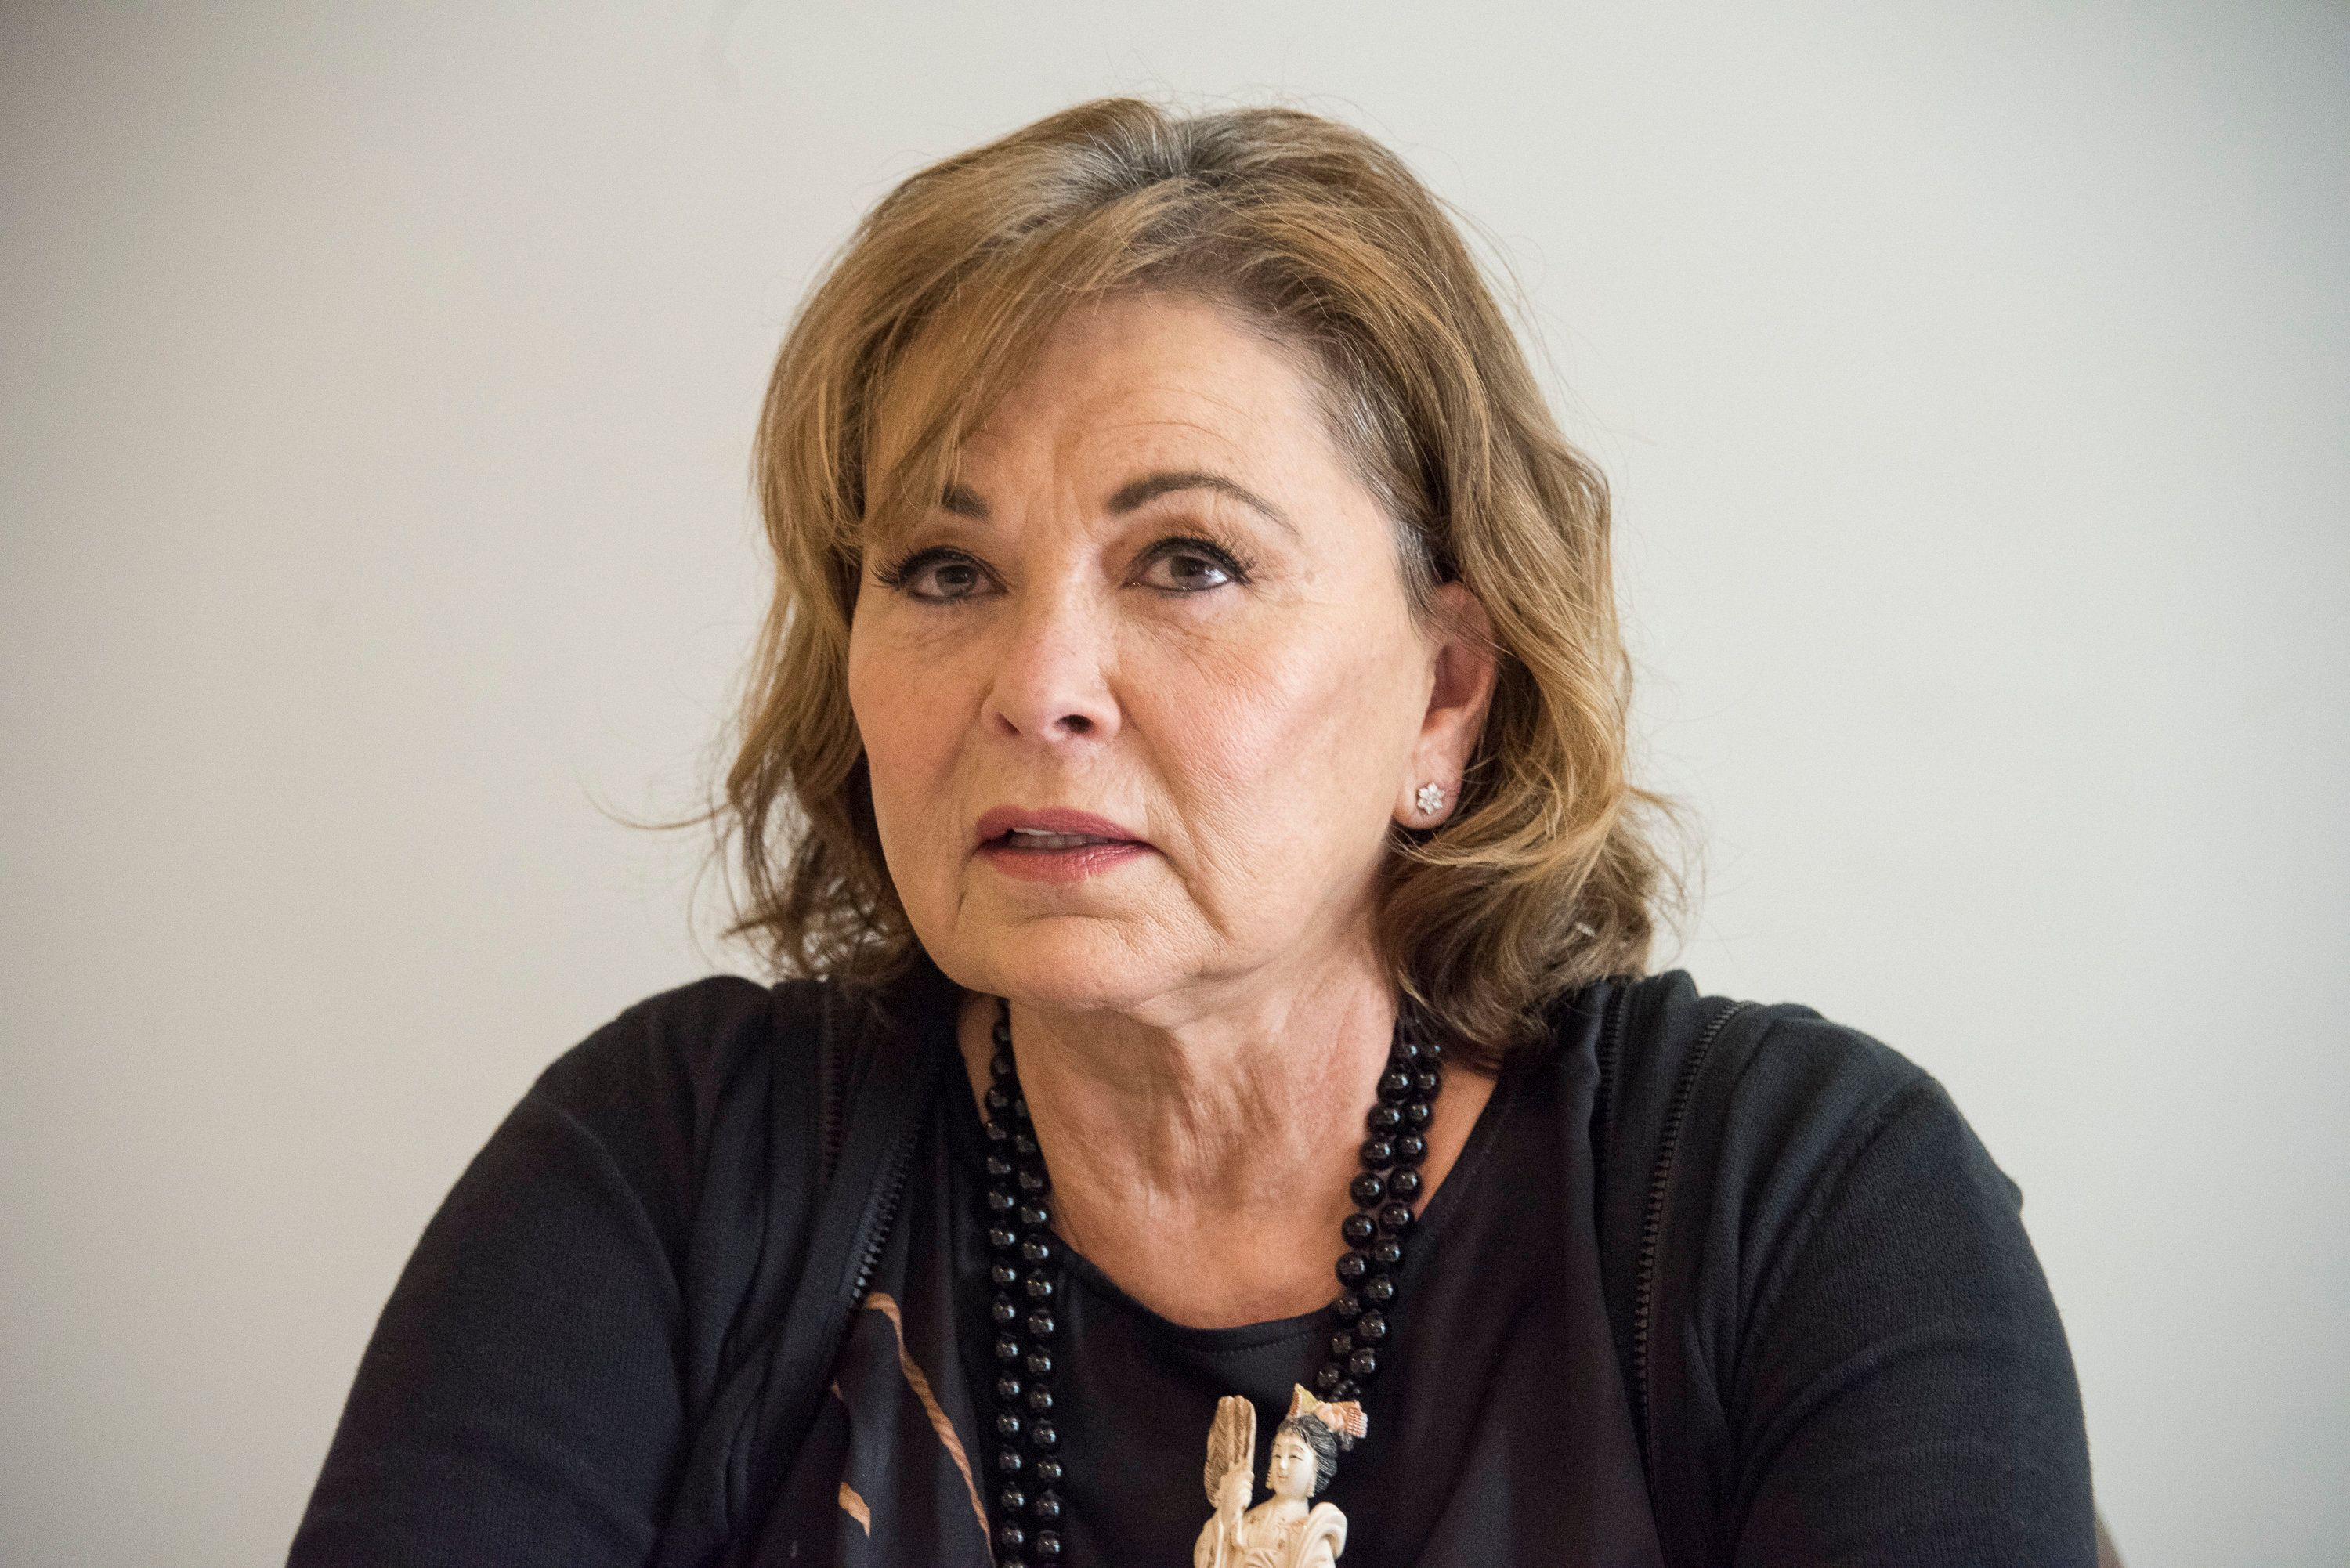 BEVERLY HILLS, CA - MARCH 23:  Roseanne Barr at the 'Roseanne' Press Conference at the Four Seasons Hotel on March 23, 2018 in Beverly Hills, California.  (Photo by Vera Anderson/WireImage)